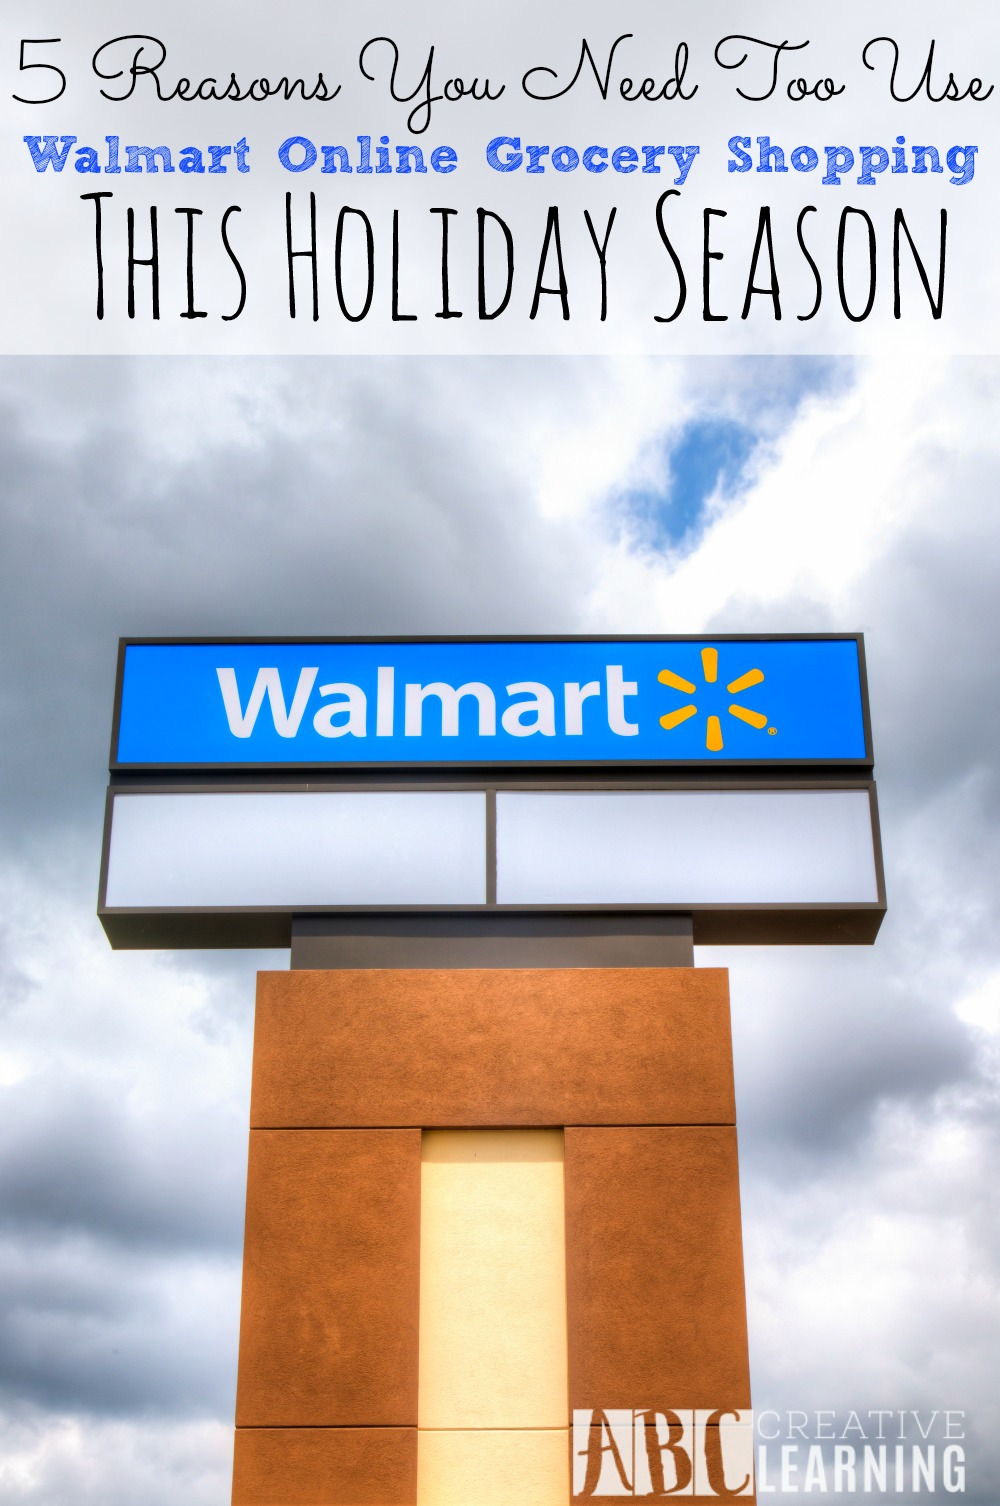 5 Reasons You Need To Use Walmart Online Grocery Shopping This Holiday Season